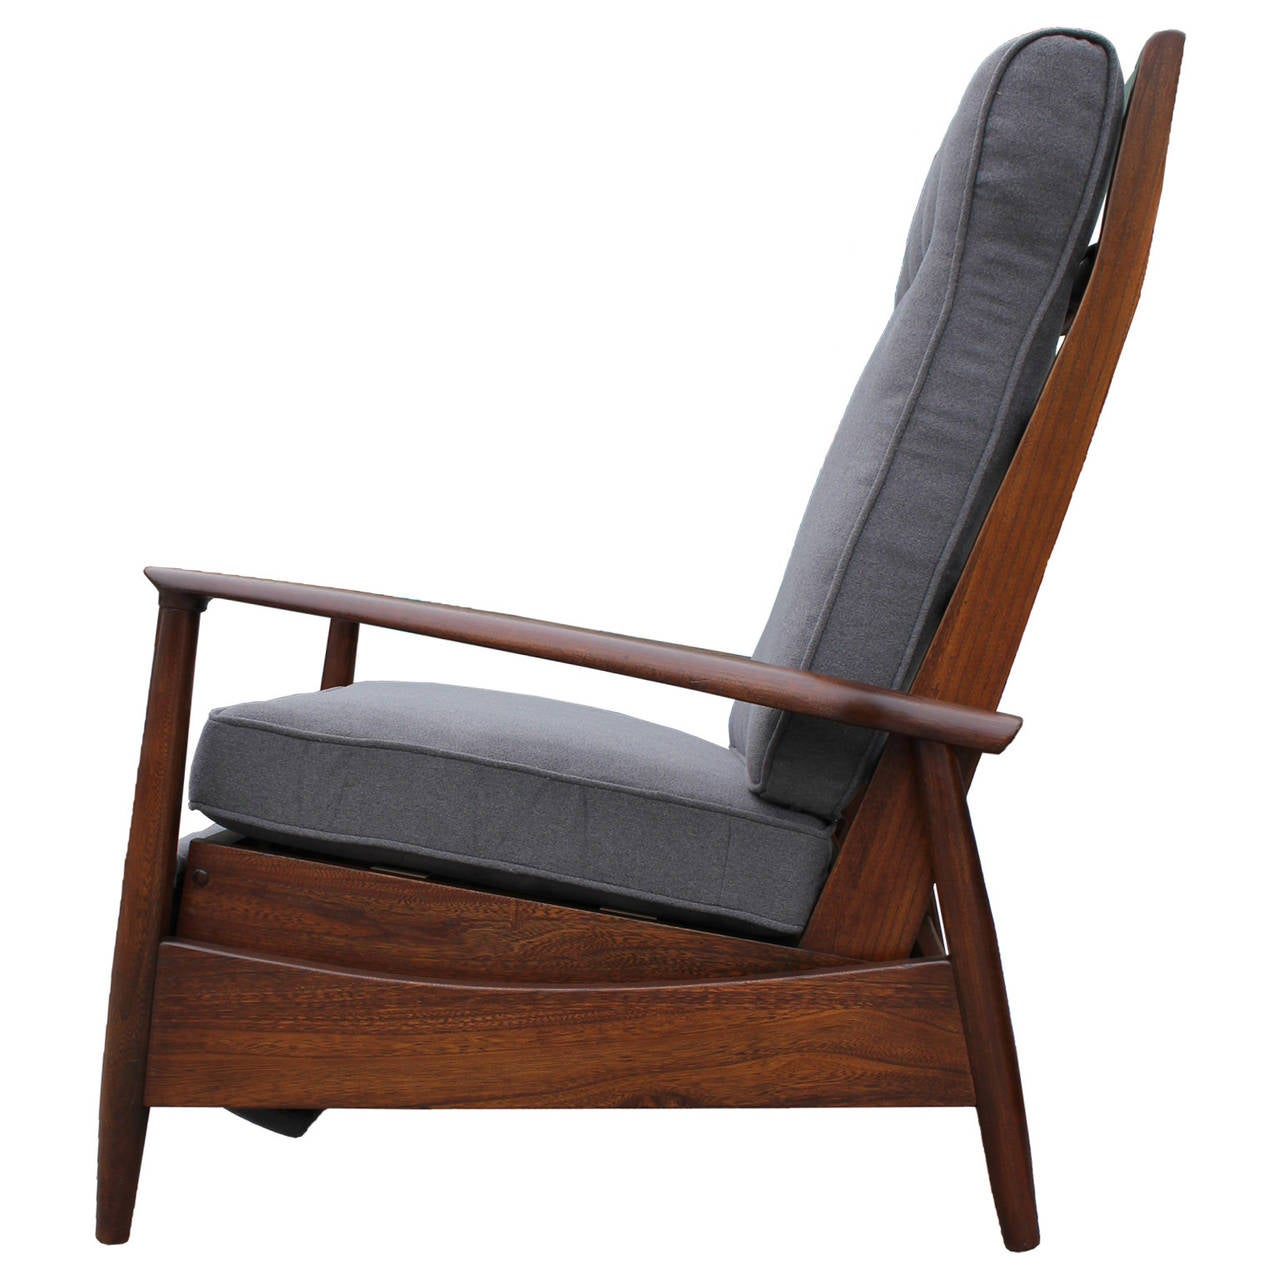 Scandinavian reclining lounge chair at 1stdibs - Scandinavian chair ...